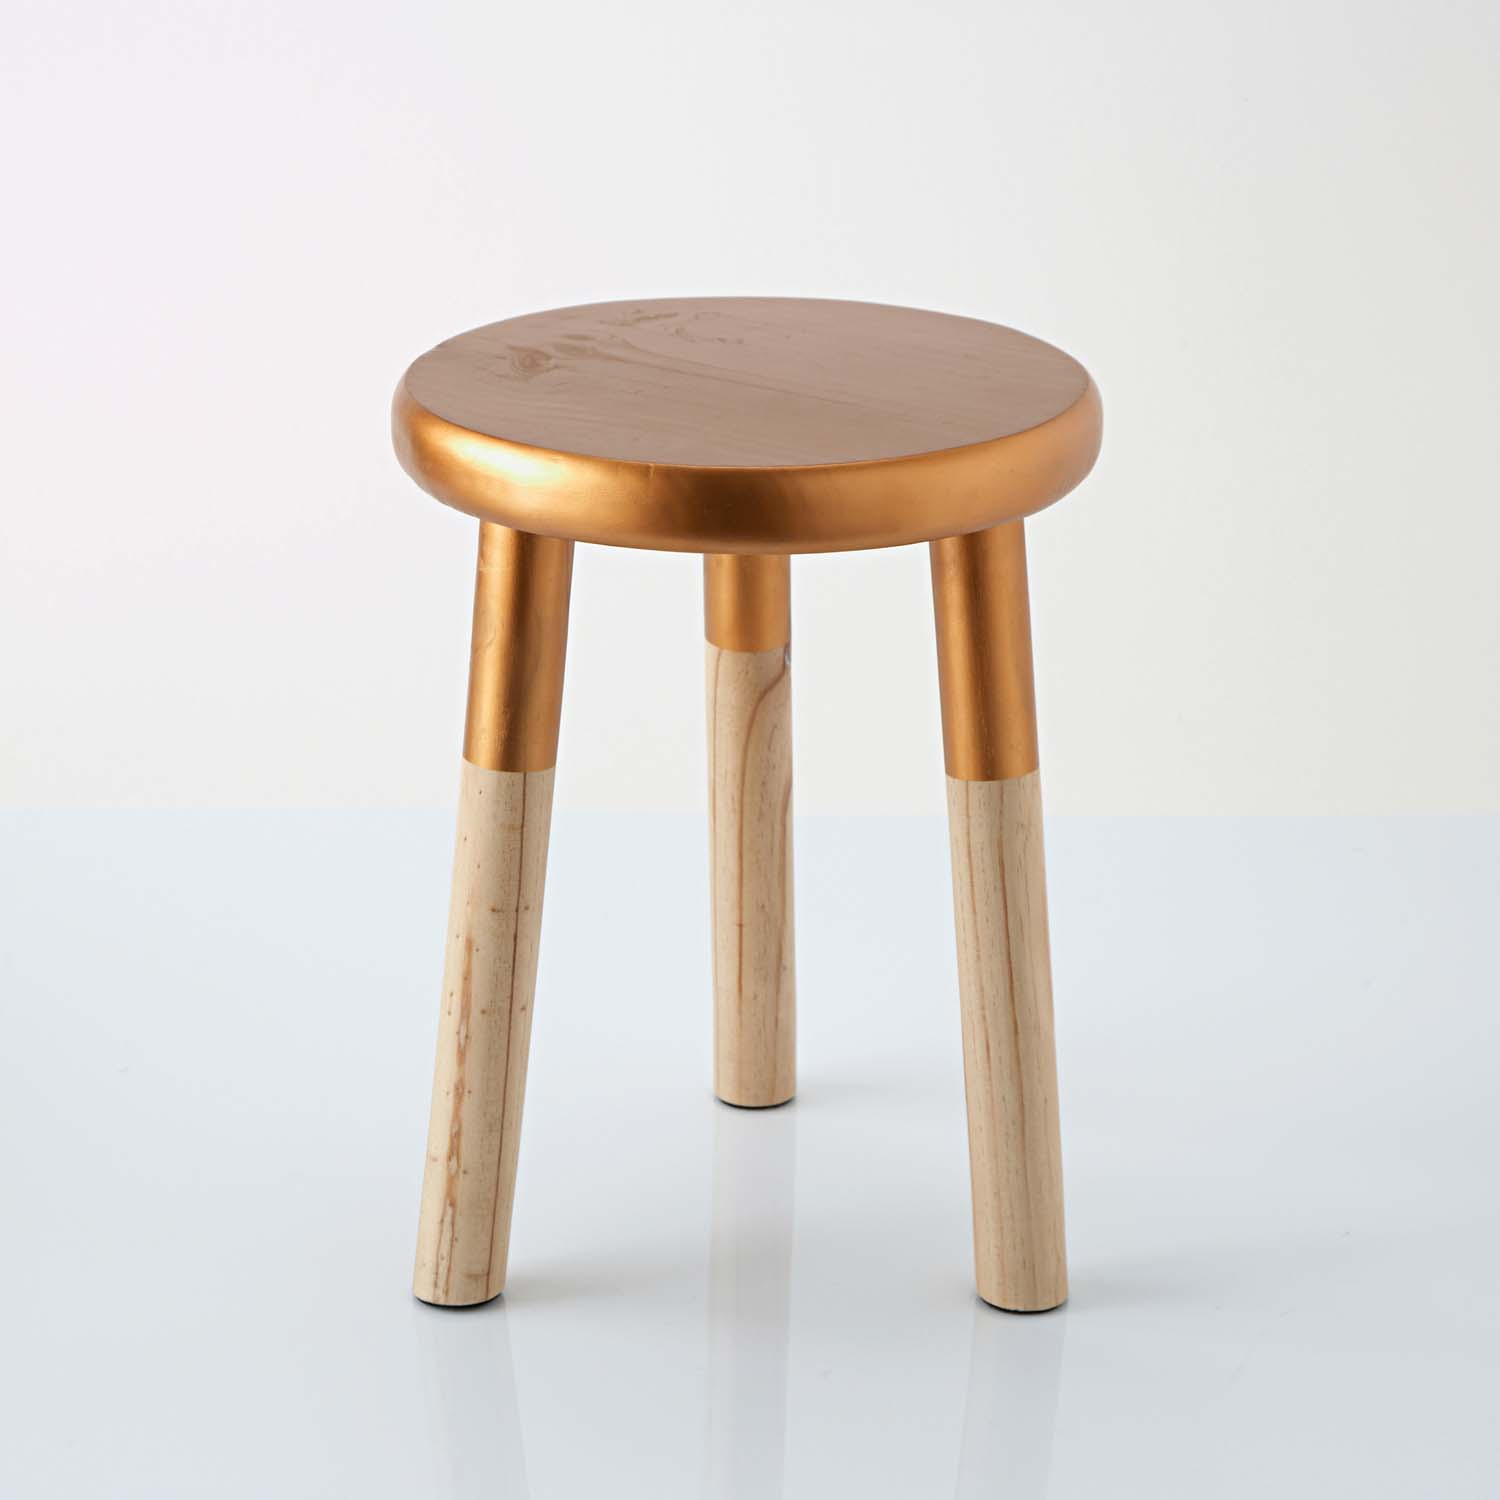 Elori Stool - This stool proves my point that copper and natural wood look just peachy together. This would be adorable beside a dressing table, or could work as a pretty hostess table beside your sofa